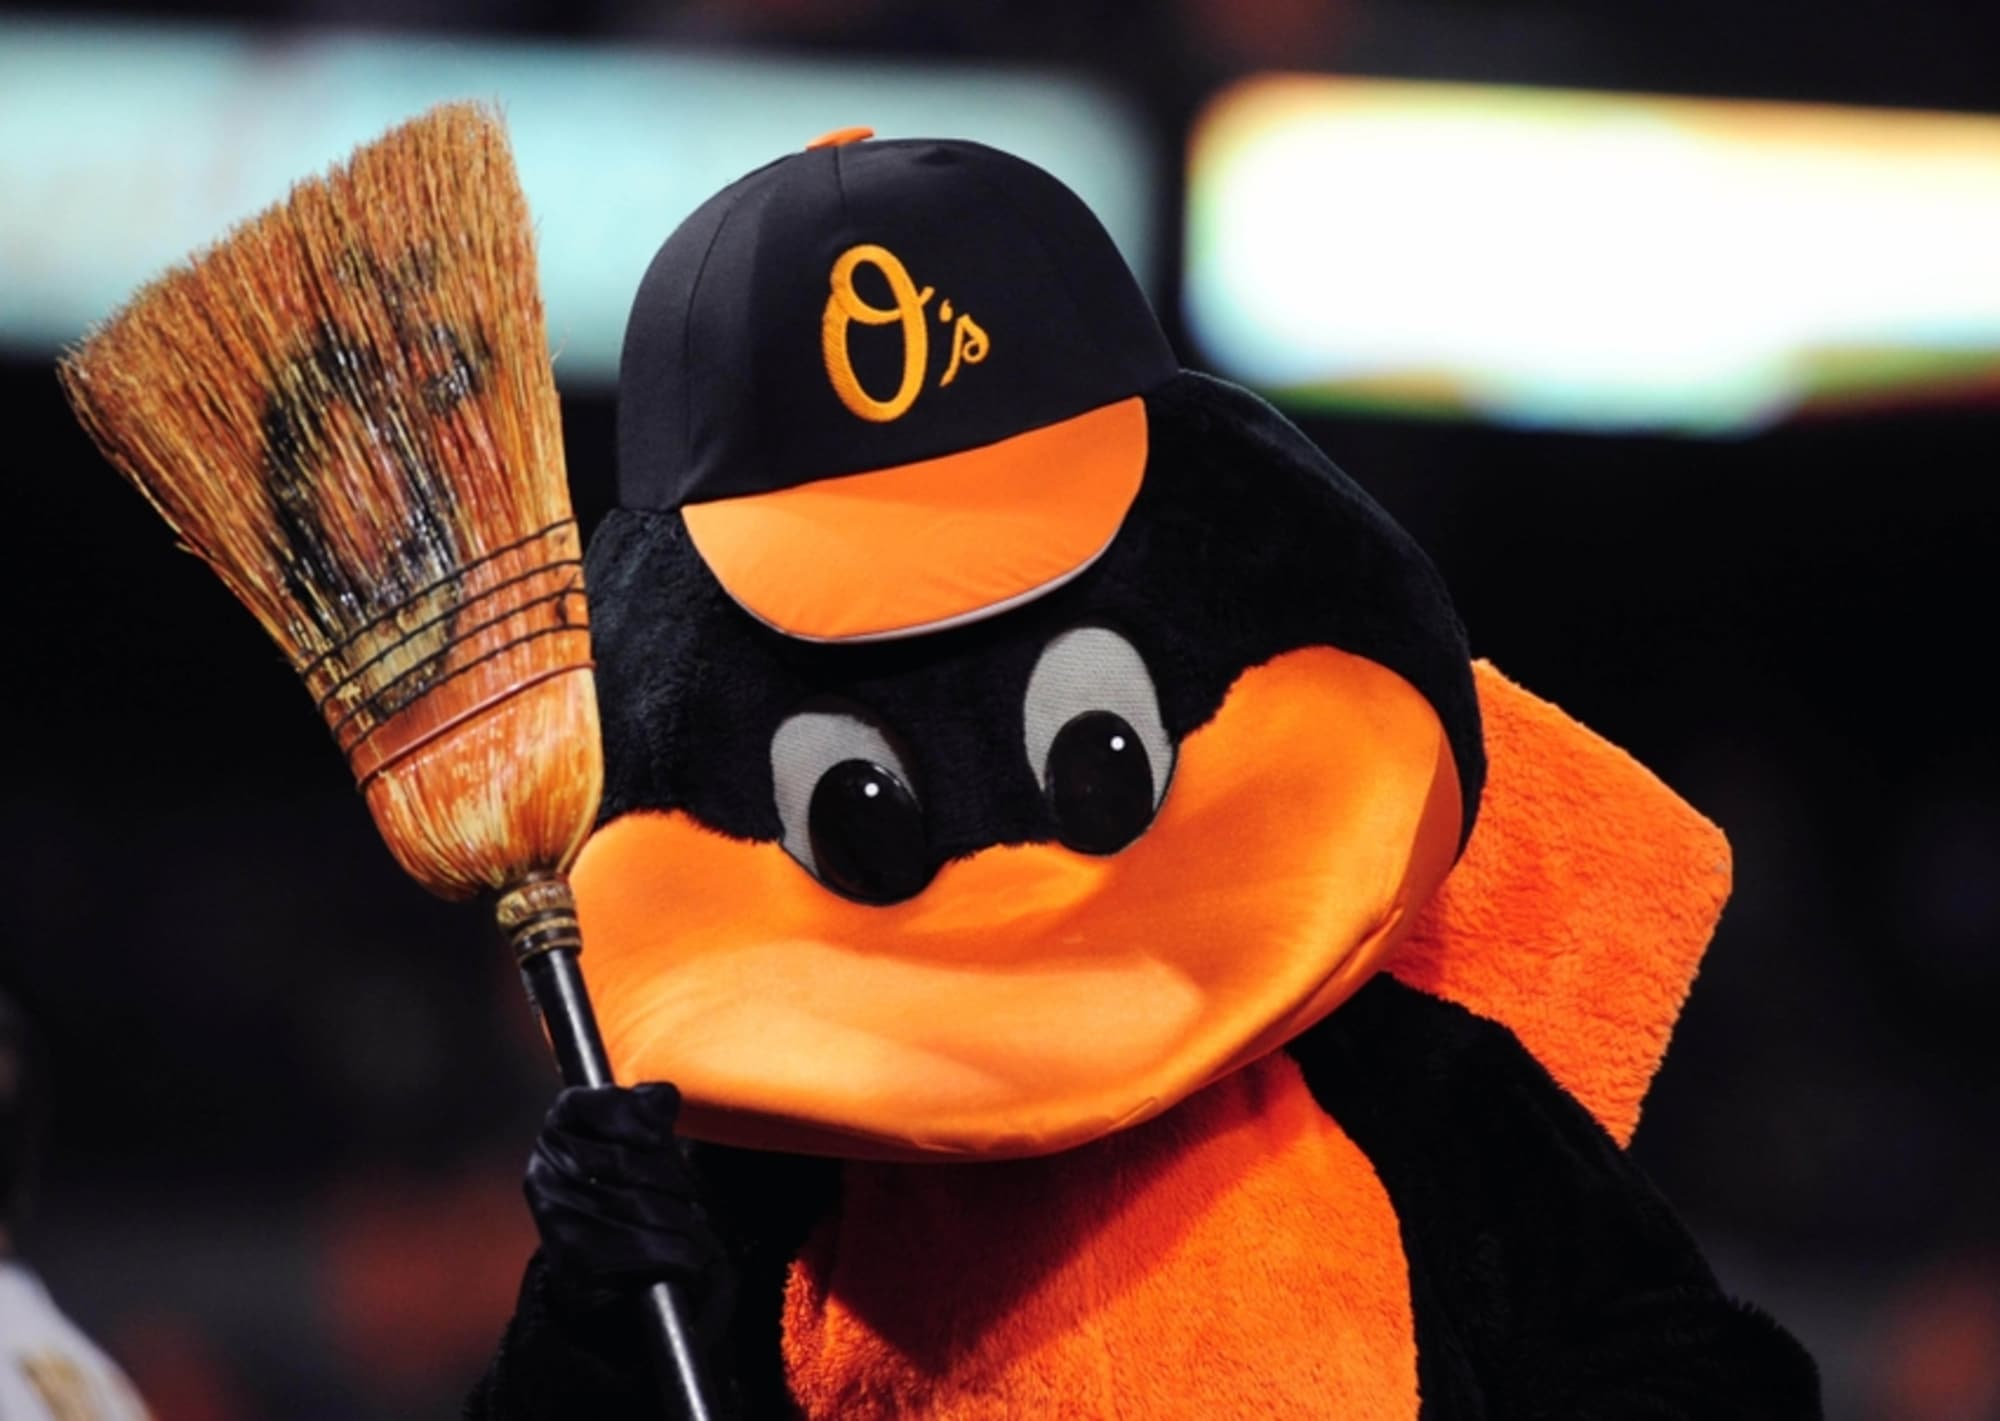 https___thebaltimorewire.com_files_2016_06_oriole-bird-mlb-oakland-athletics-baltimore-orioles.jpg